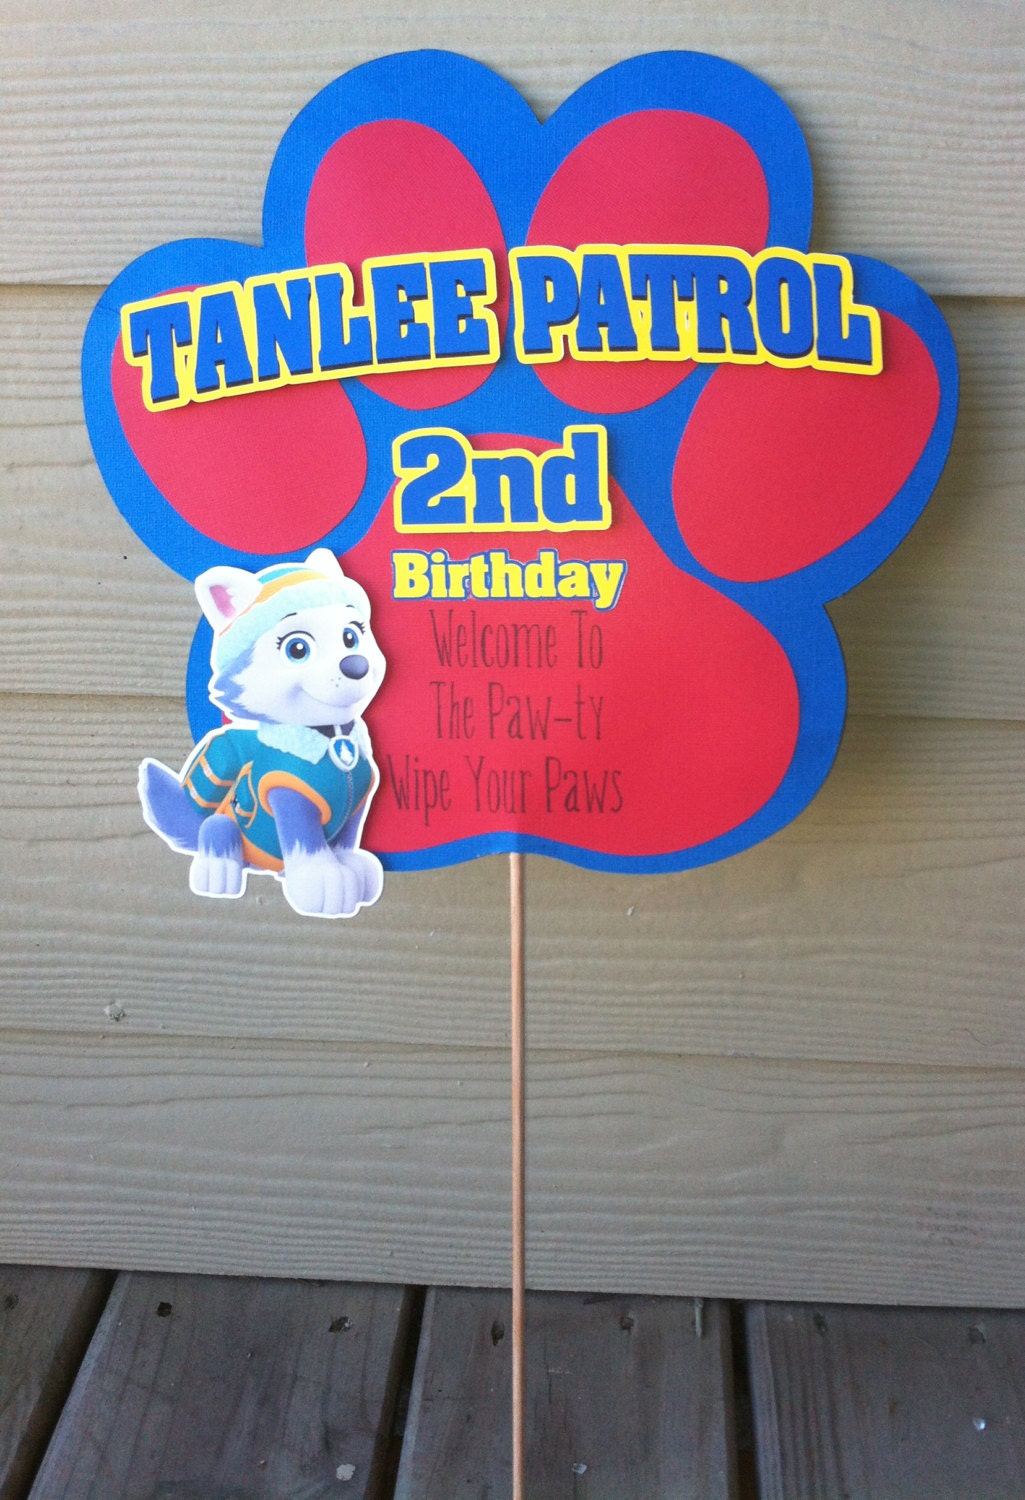 Paw Patrol Birthday Yard Sign. Little Man Banners. Kitchen Floor Murals. Skullskins Stickers. Dangerous Situation Signs. Team Banners. Spray Paint Wall Murals. Toyota Fortuner Decals. Tattoo Outline Lettering